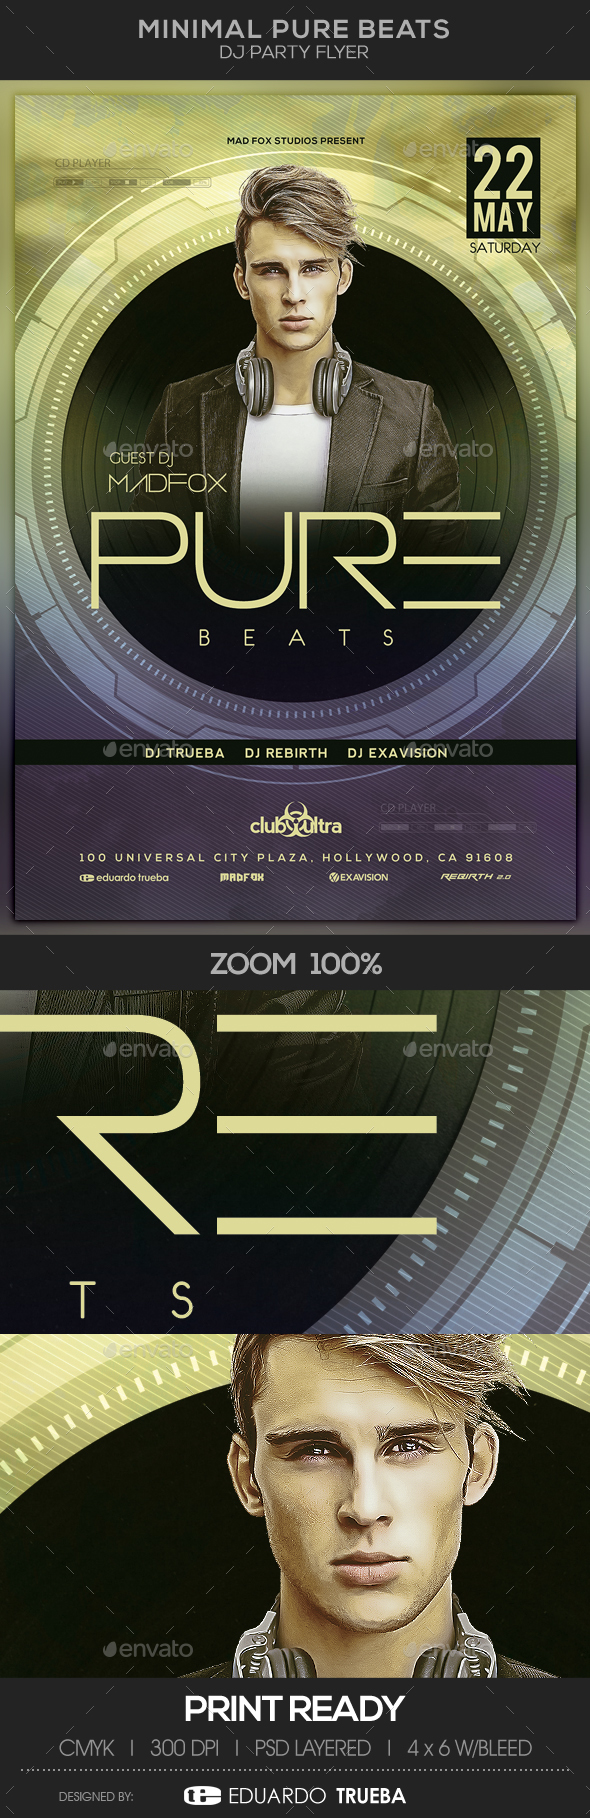 Minimal Pure Beats Dj Party Flyer - Clubs & Parties Events